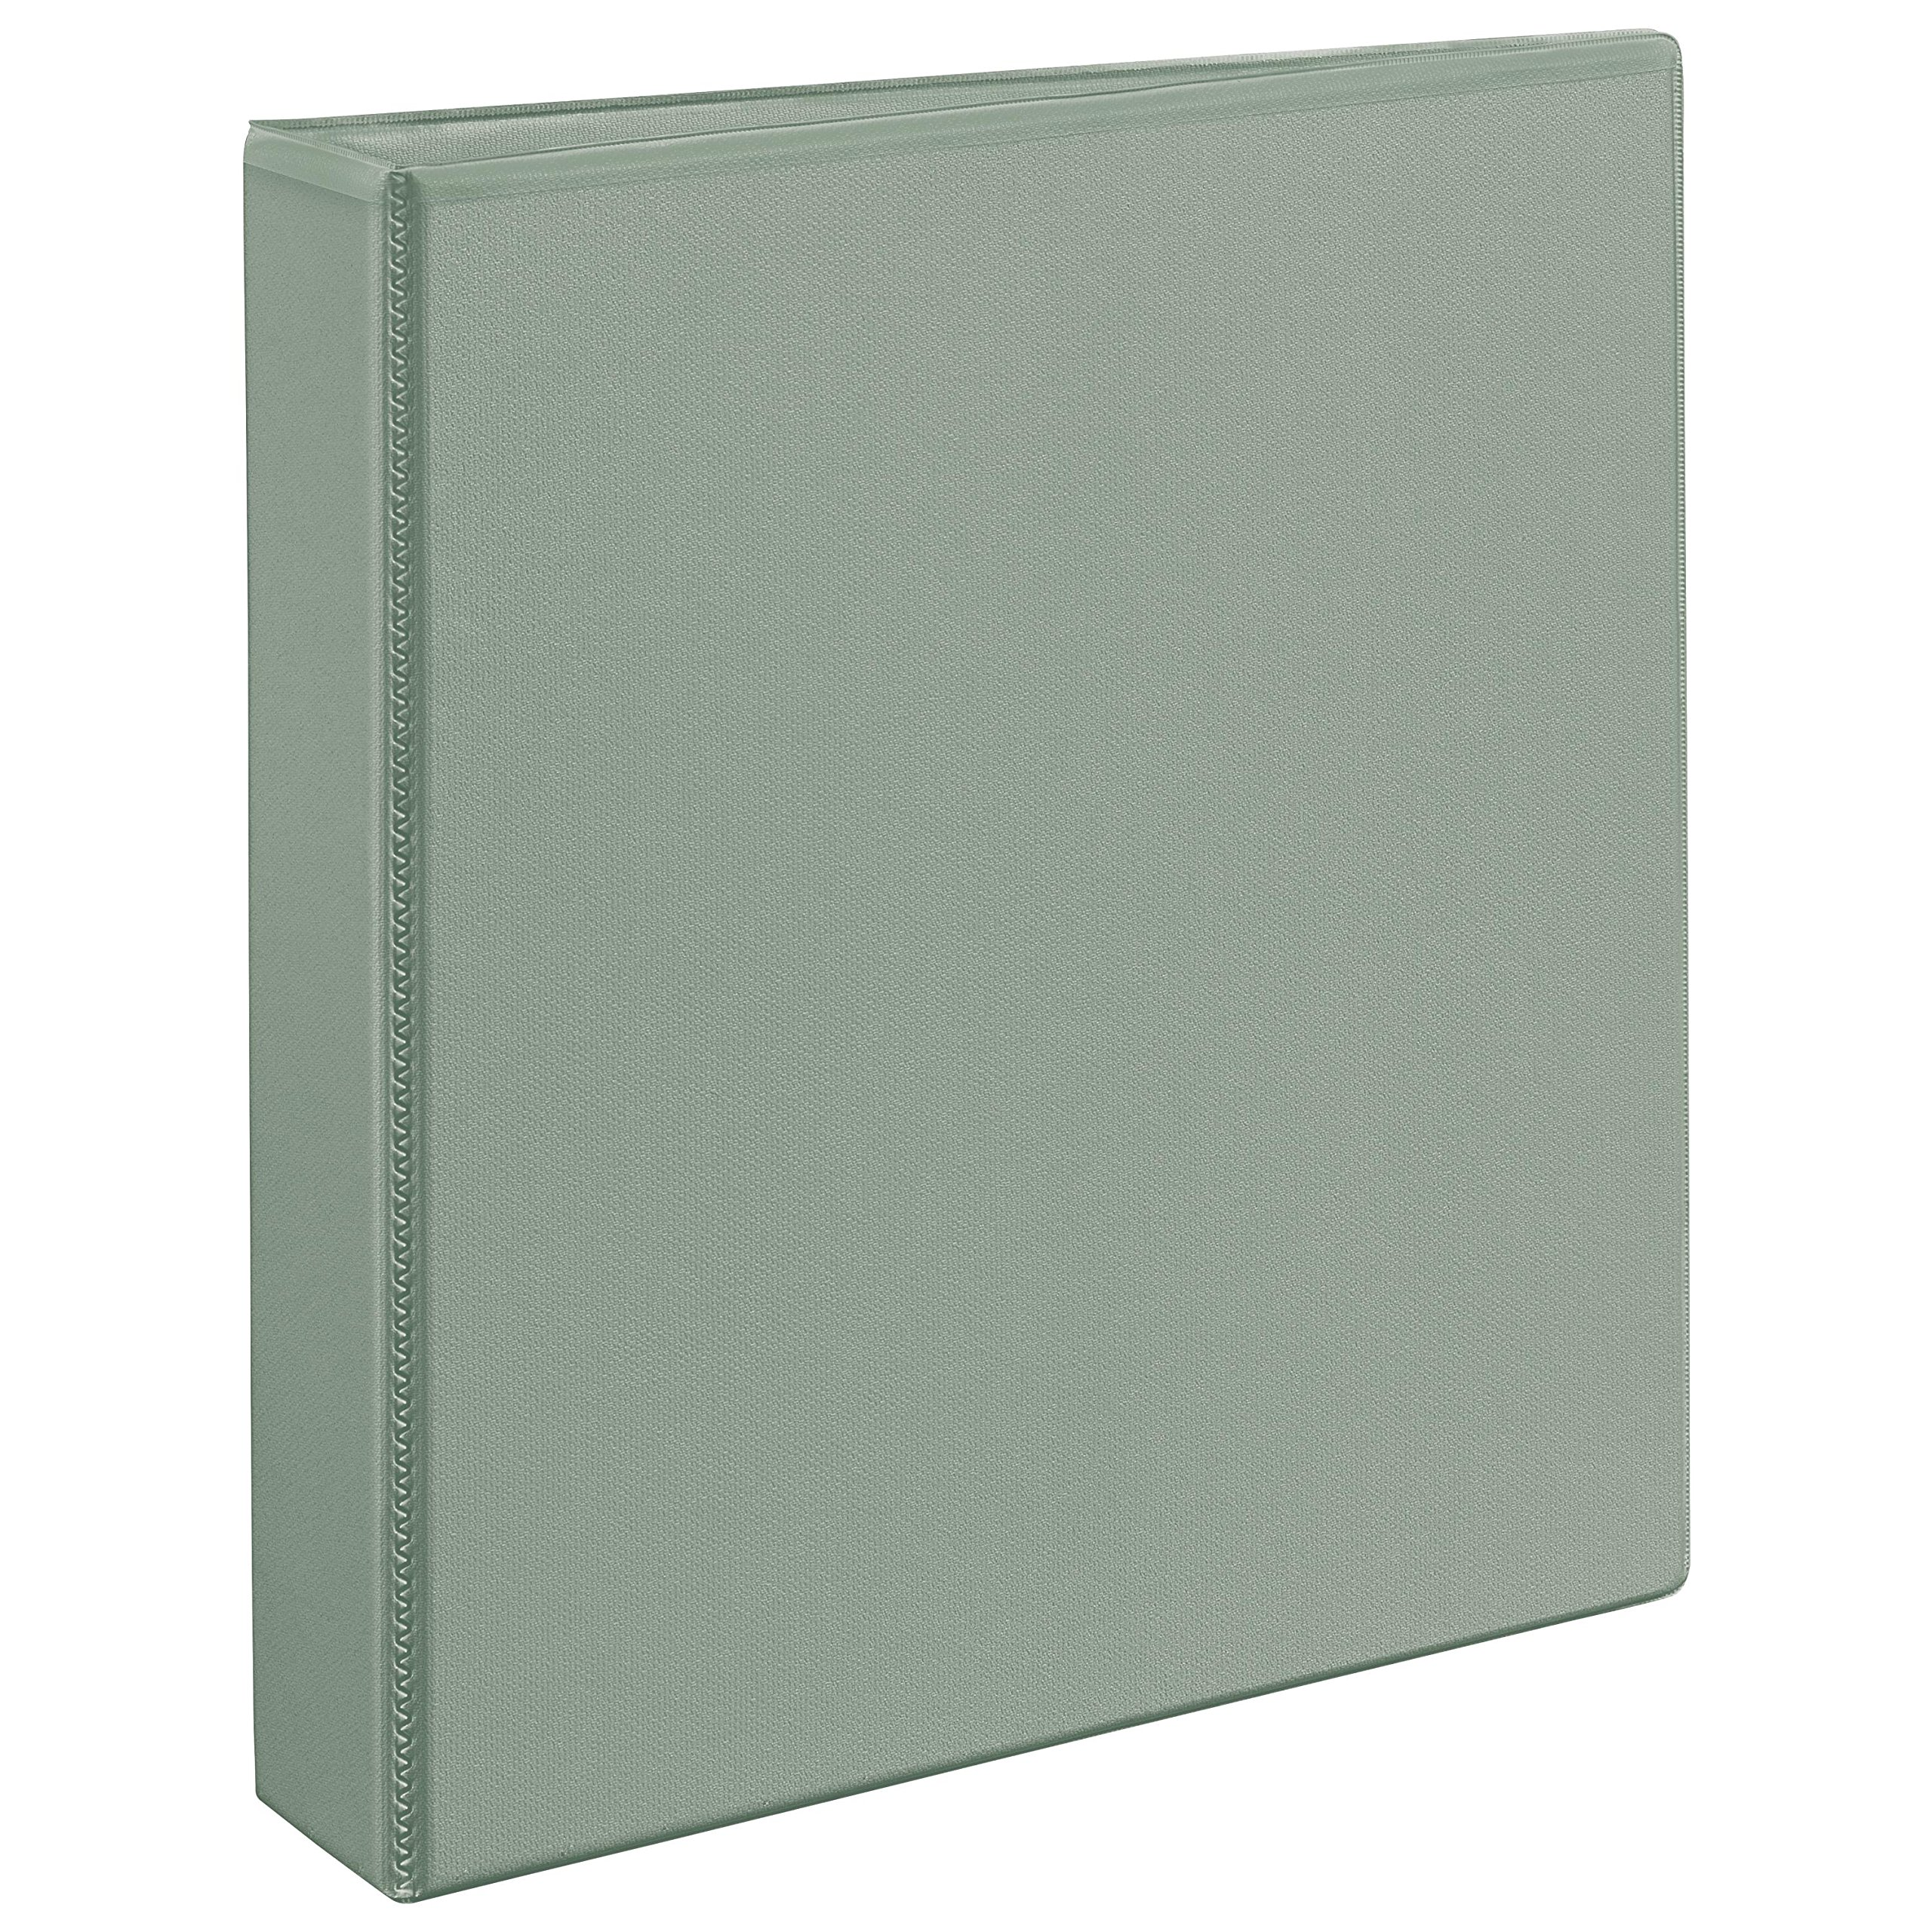 Avery Heavy-Duty Nonstick View Binder, 1-1/2'' One Touch Slant Rings, 375-Sheet Capacity, DuraHinge, Shadow Gray (05403)